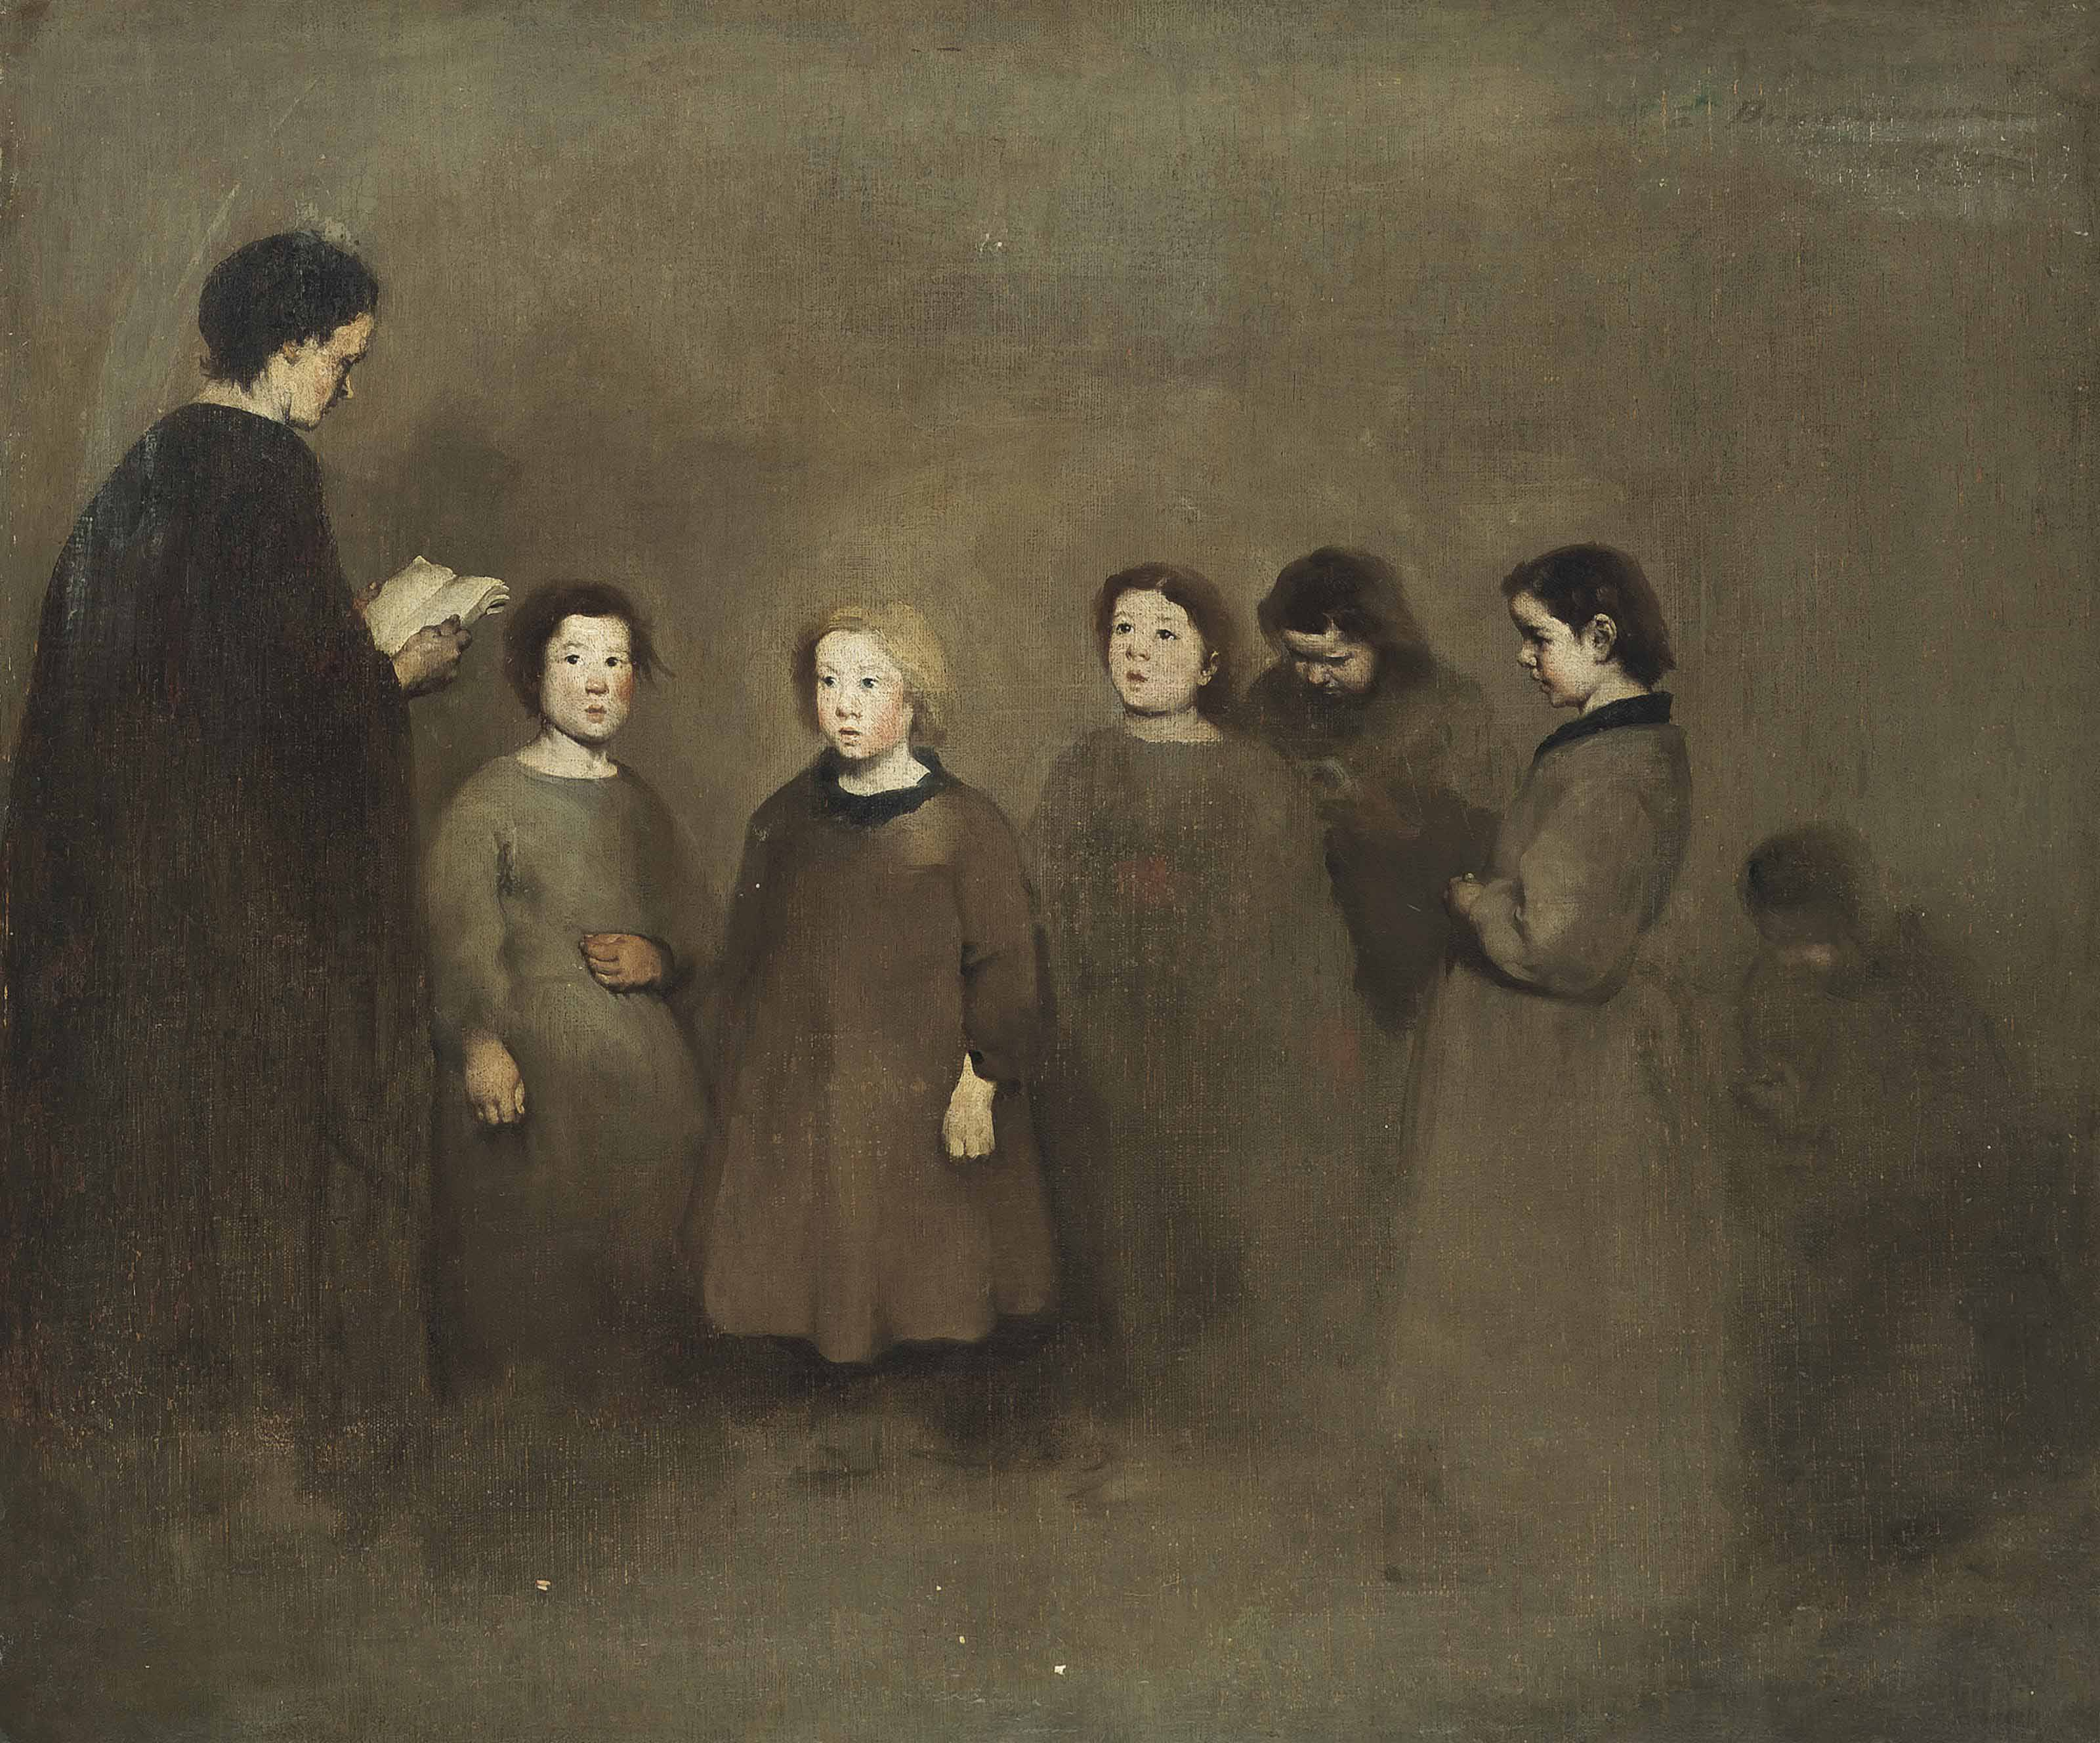 Theodule Augustin Ribot (French, 1823-1891)